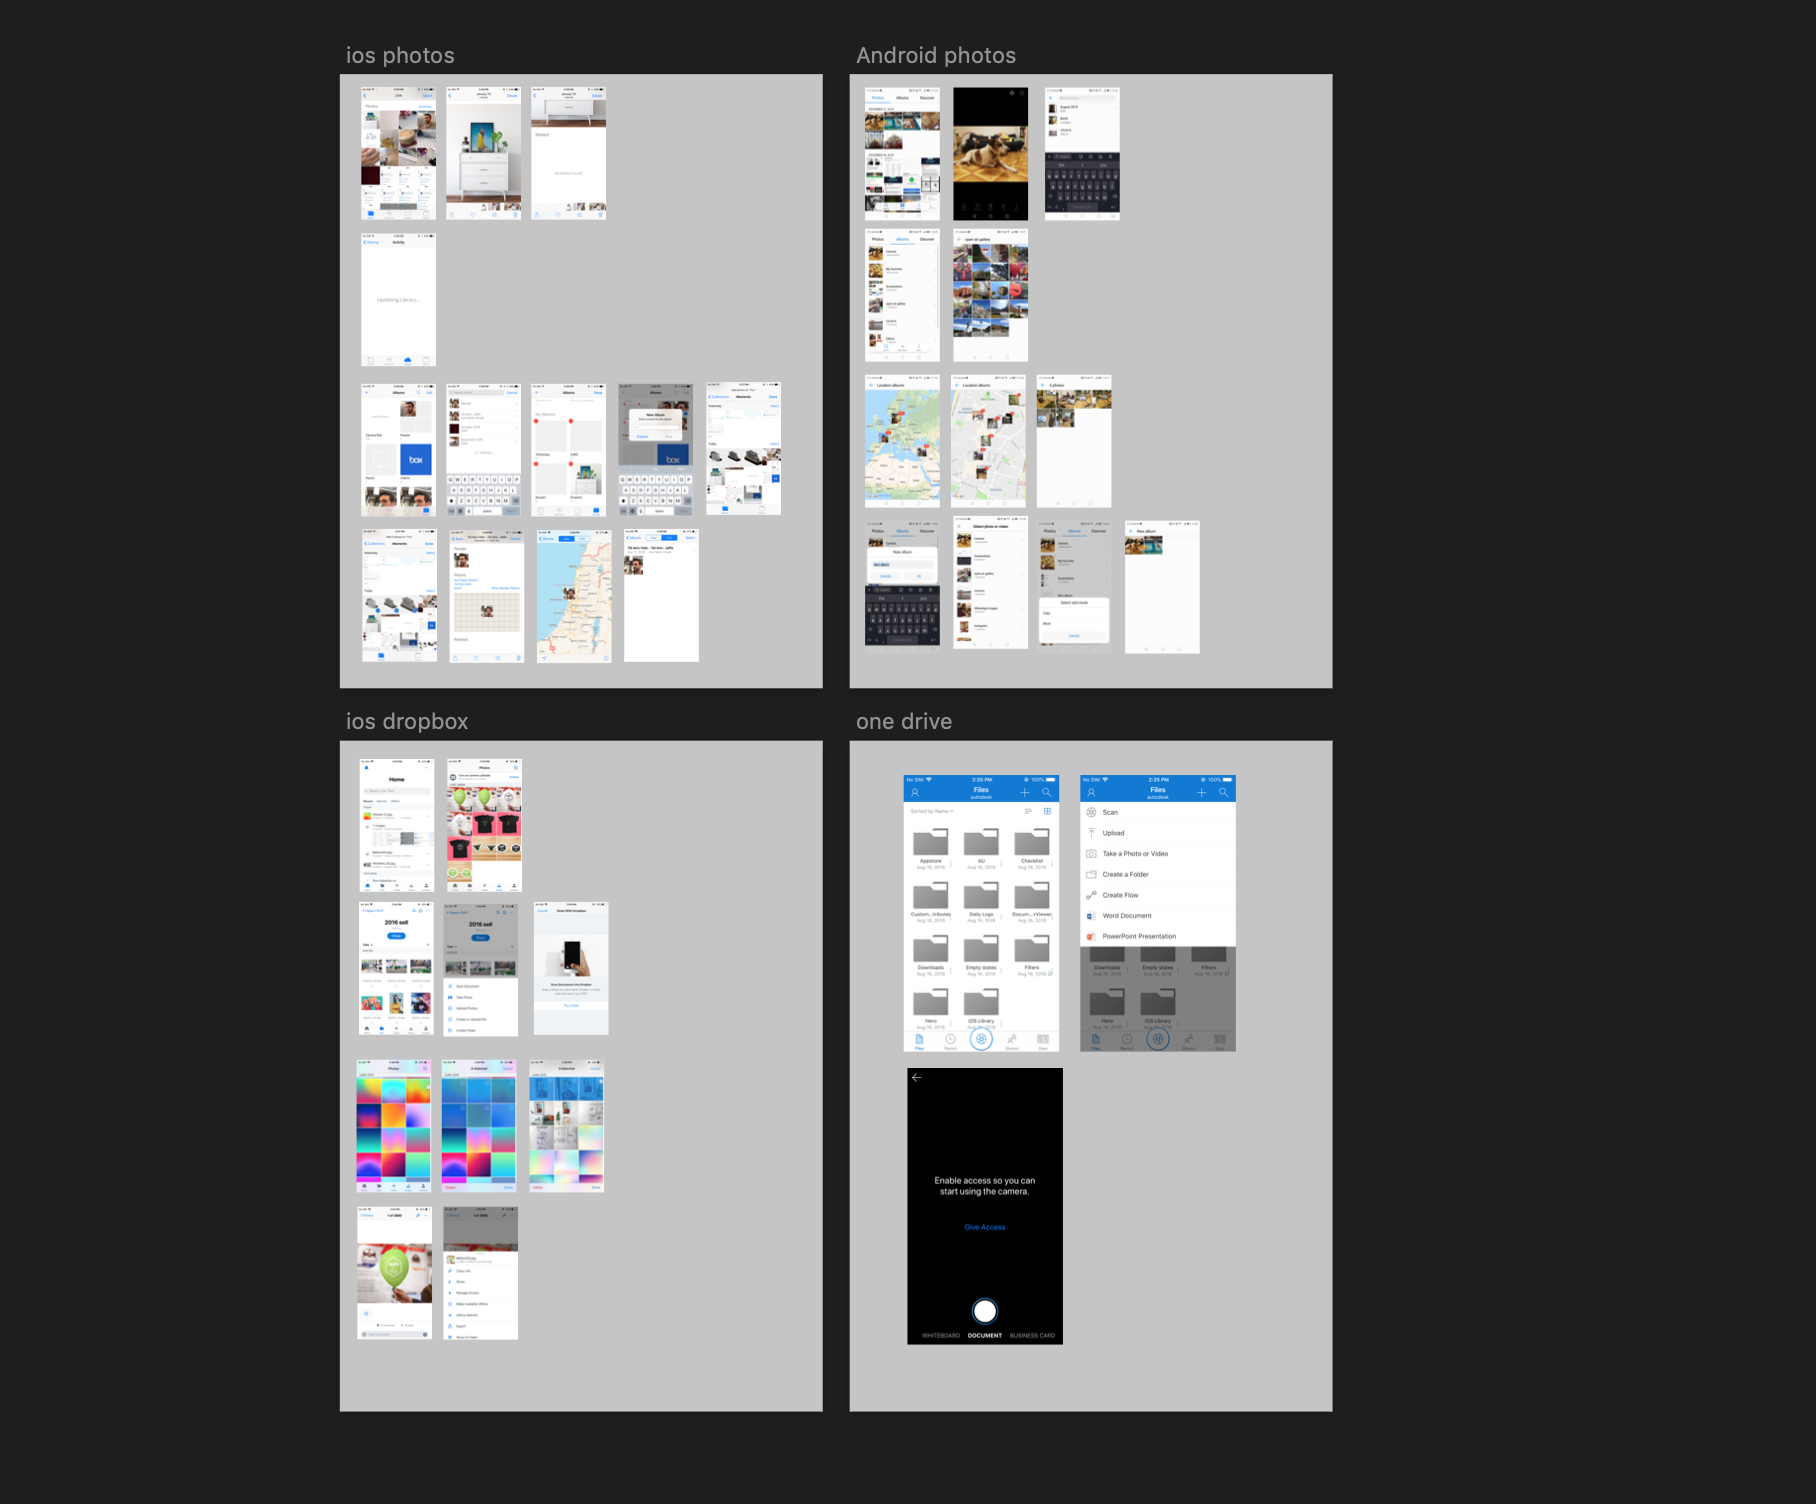 Photo libraries screenshot and workflows.